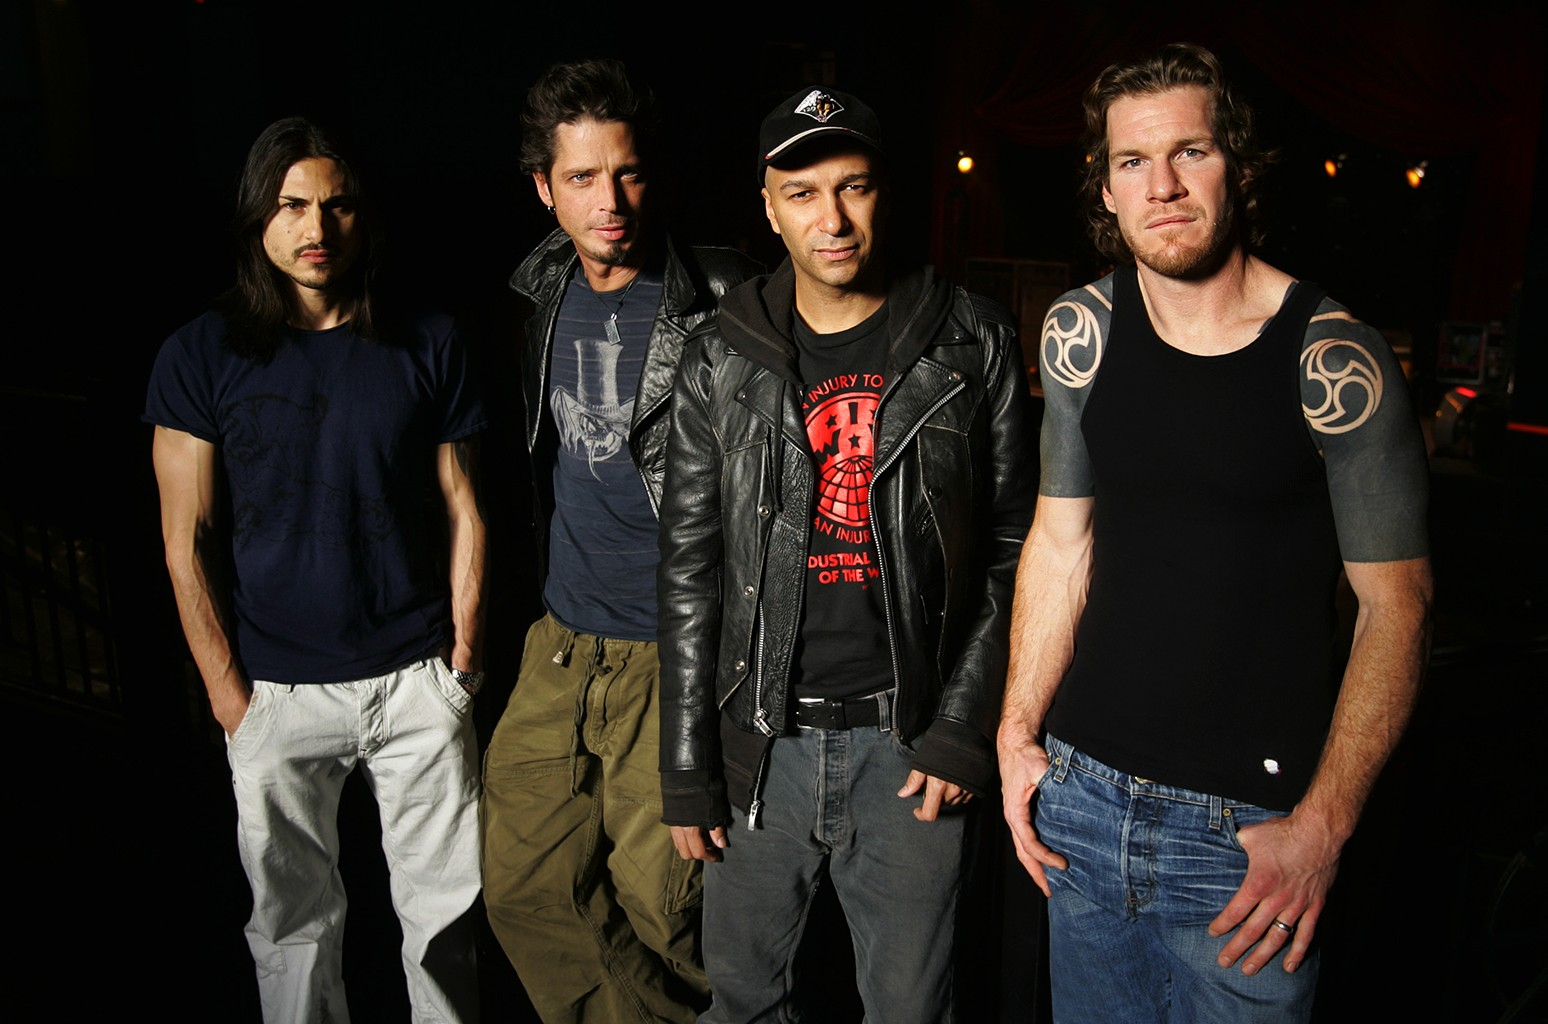 Audioslave photographed on May 1, 2005 in Washington, D.C.